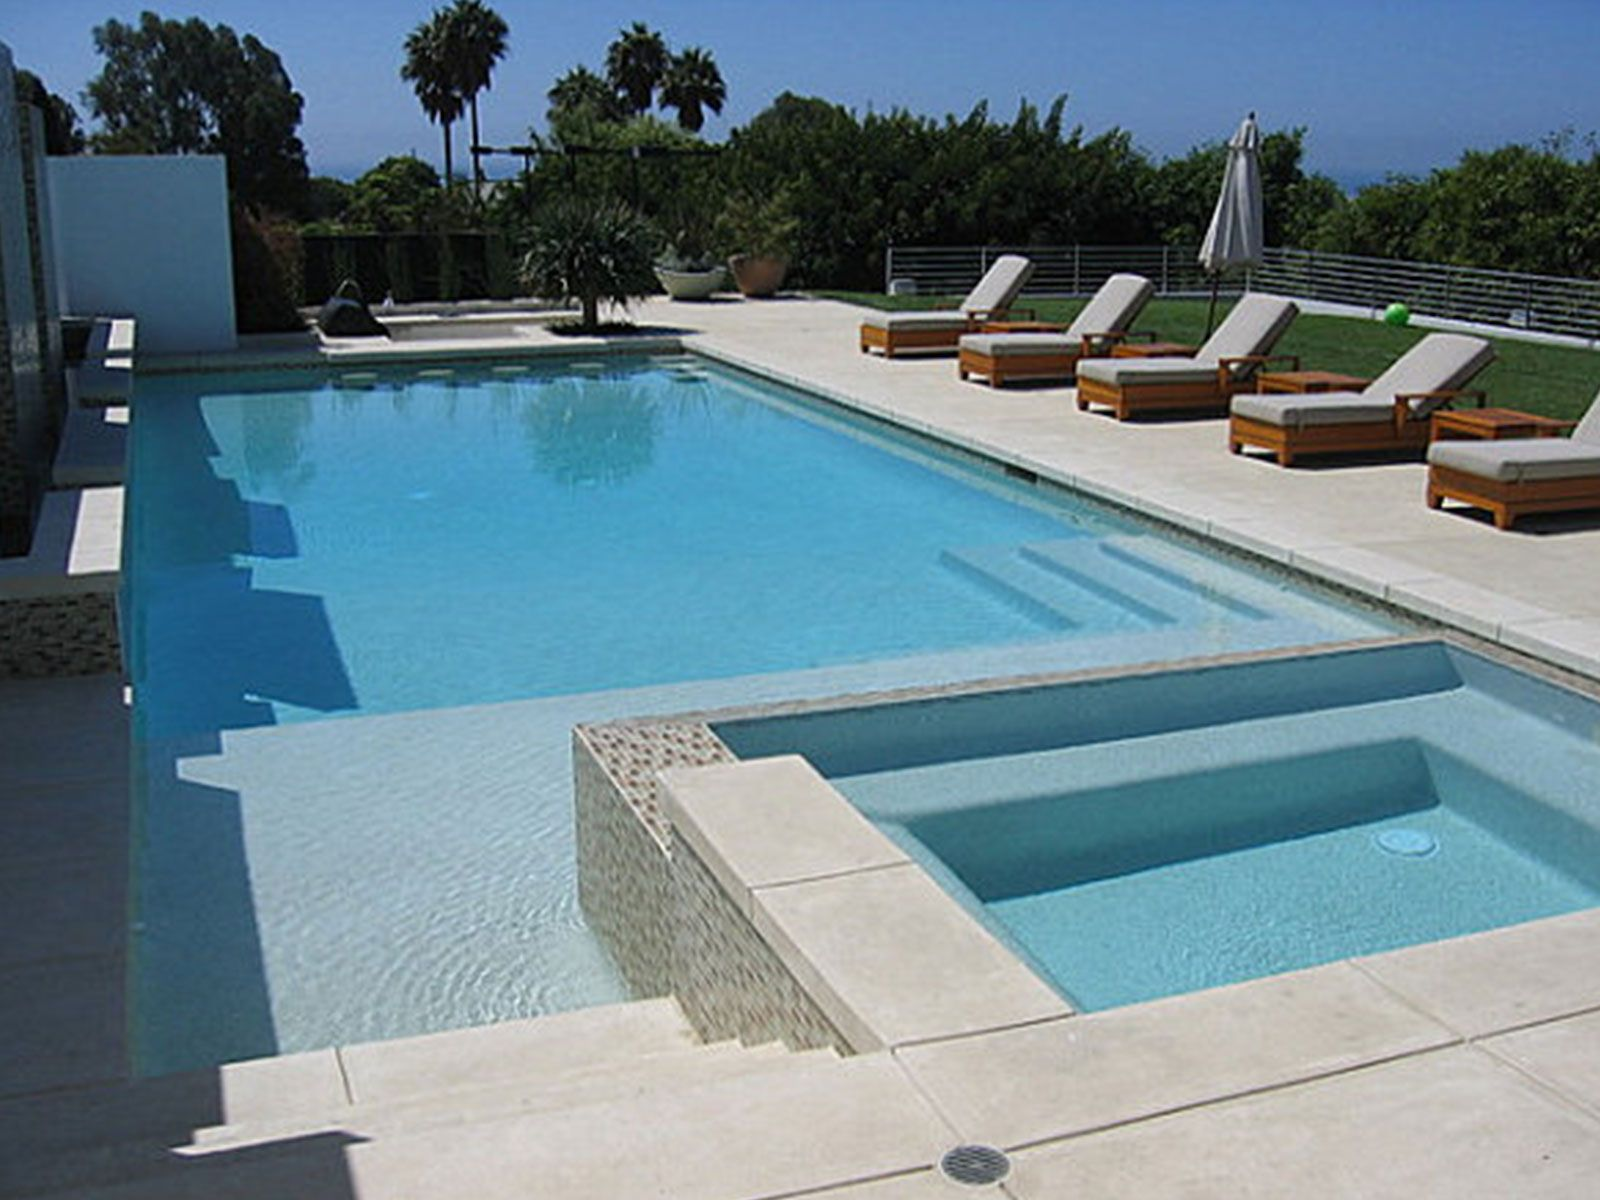 simple swimming pool design image modern creative swimming modern swimming pools and spas - Design A Swimming Pool